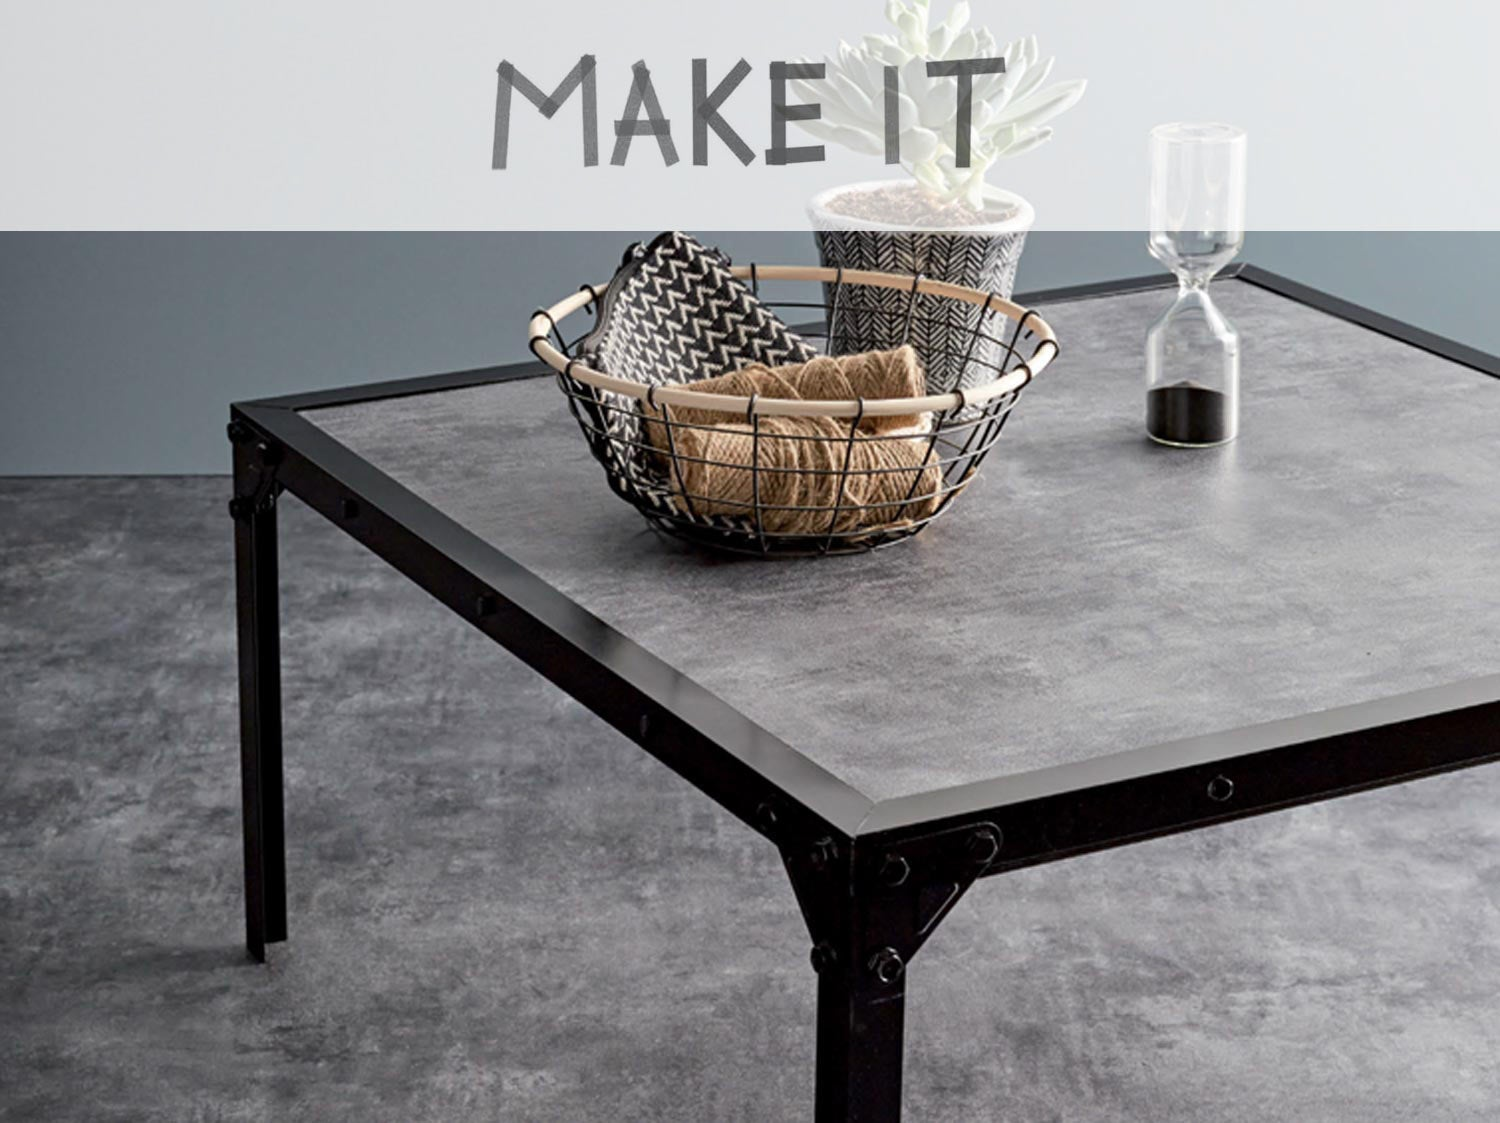 diy fabriquer une table basse au style industriel leroy merlin. Black Bedroom Furniture Sets. Home Design Ideas